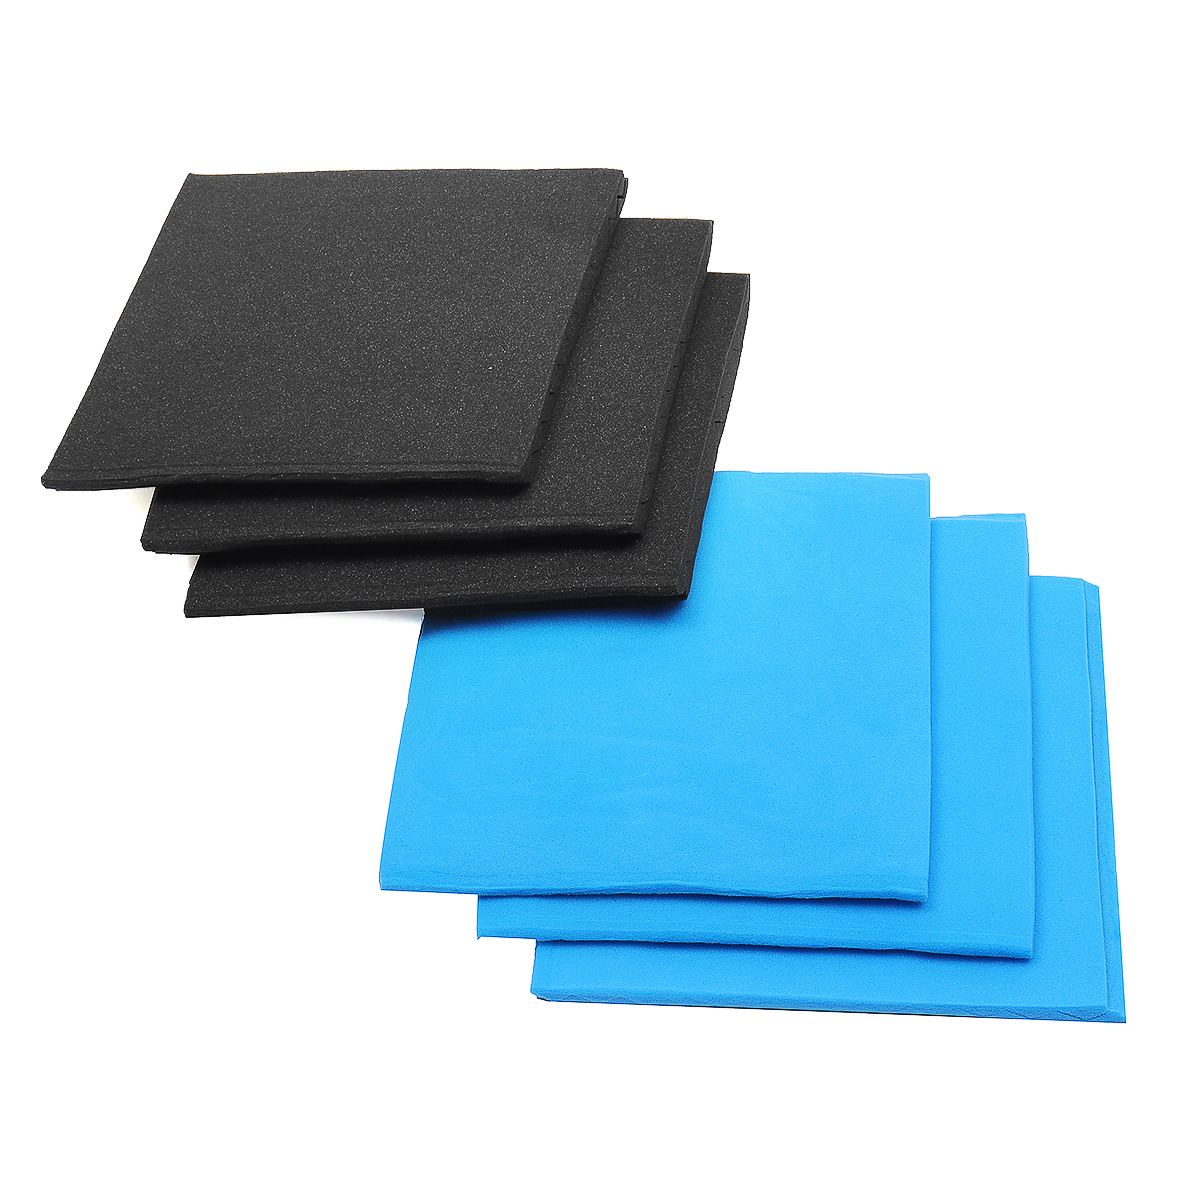 12pcs Acoustic Panels Soundproofing Sound Insulation Cotton Foam Tiles Studio 30*30*2.5cm